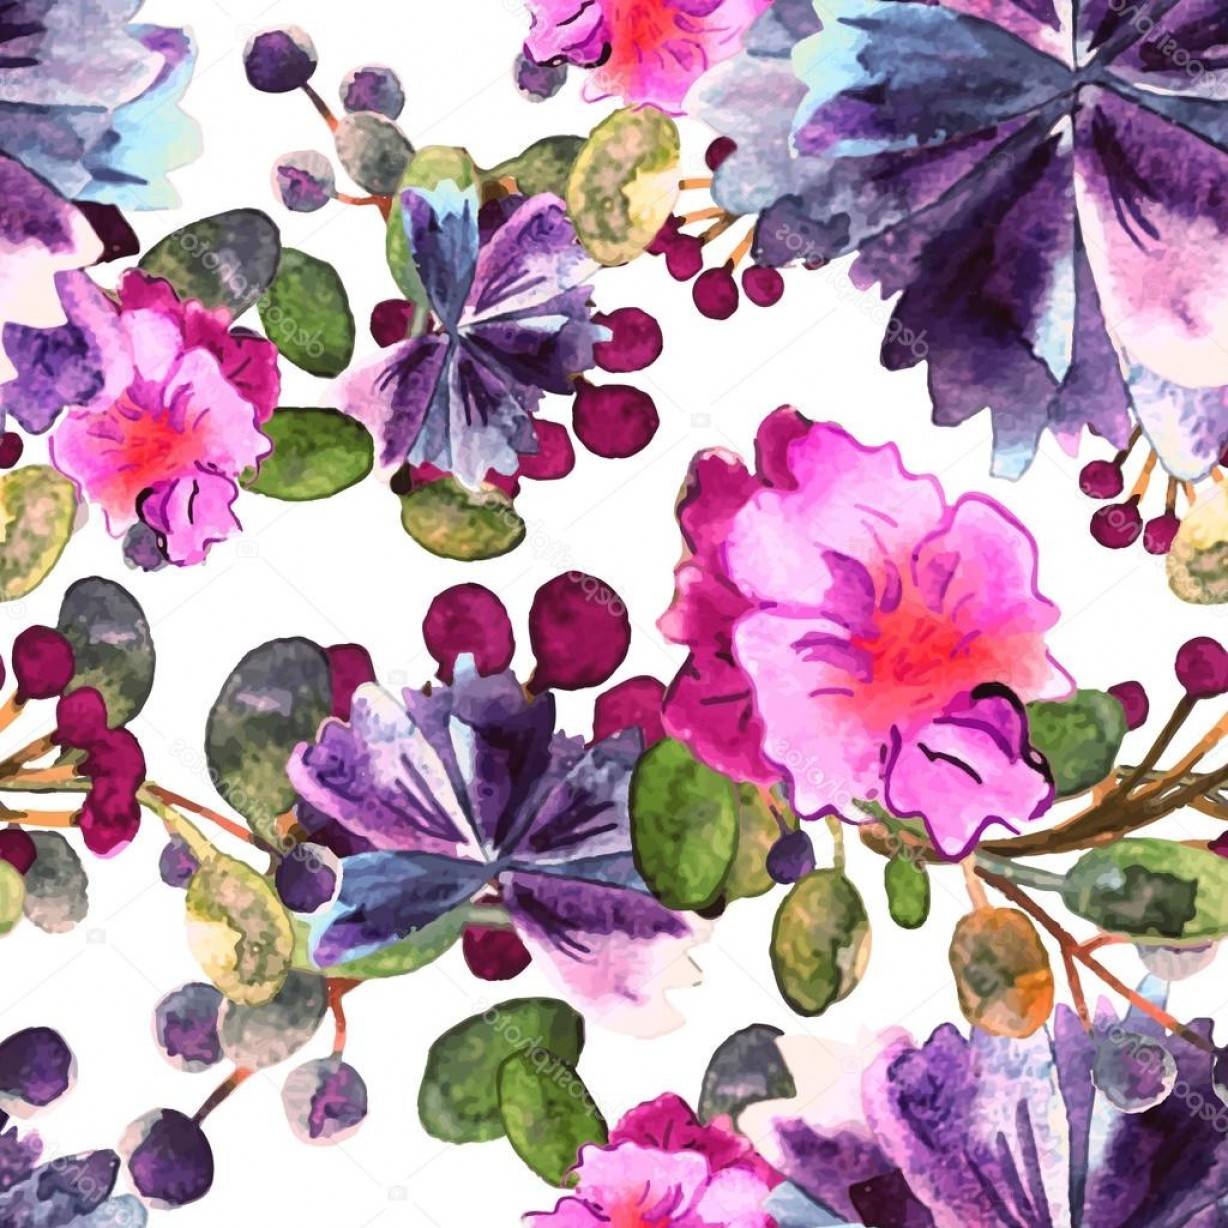 Watercolor Floral Background Vector: Stock Illustration Watercolor Floral Pattern Seamless With